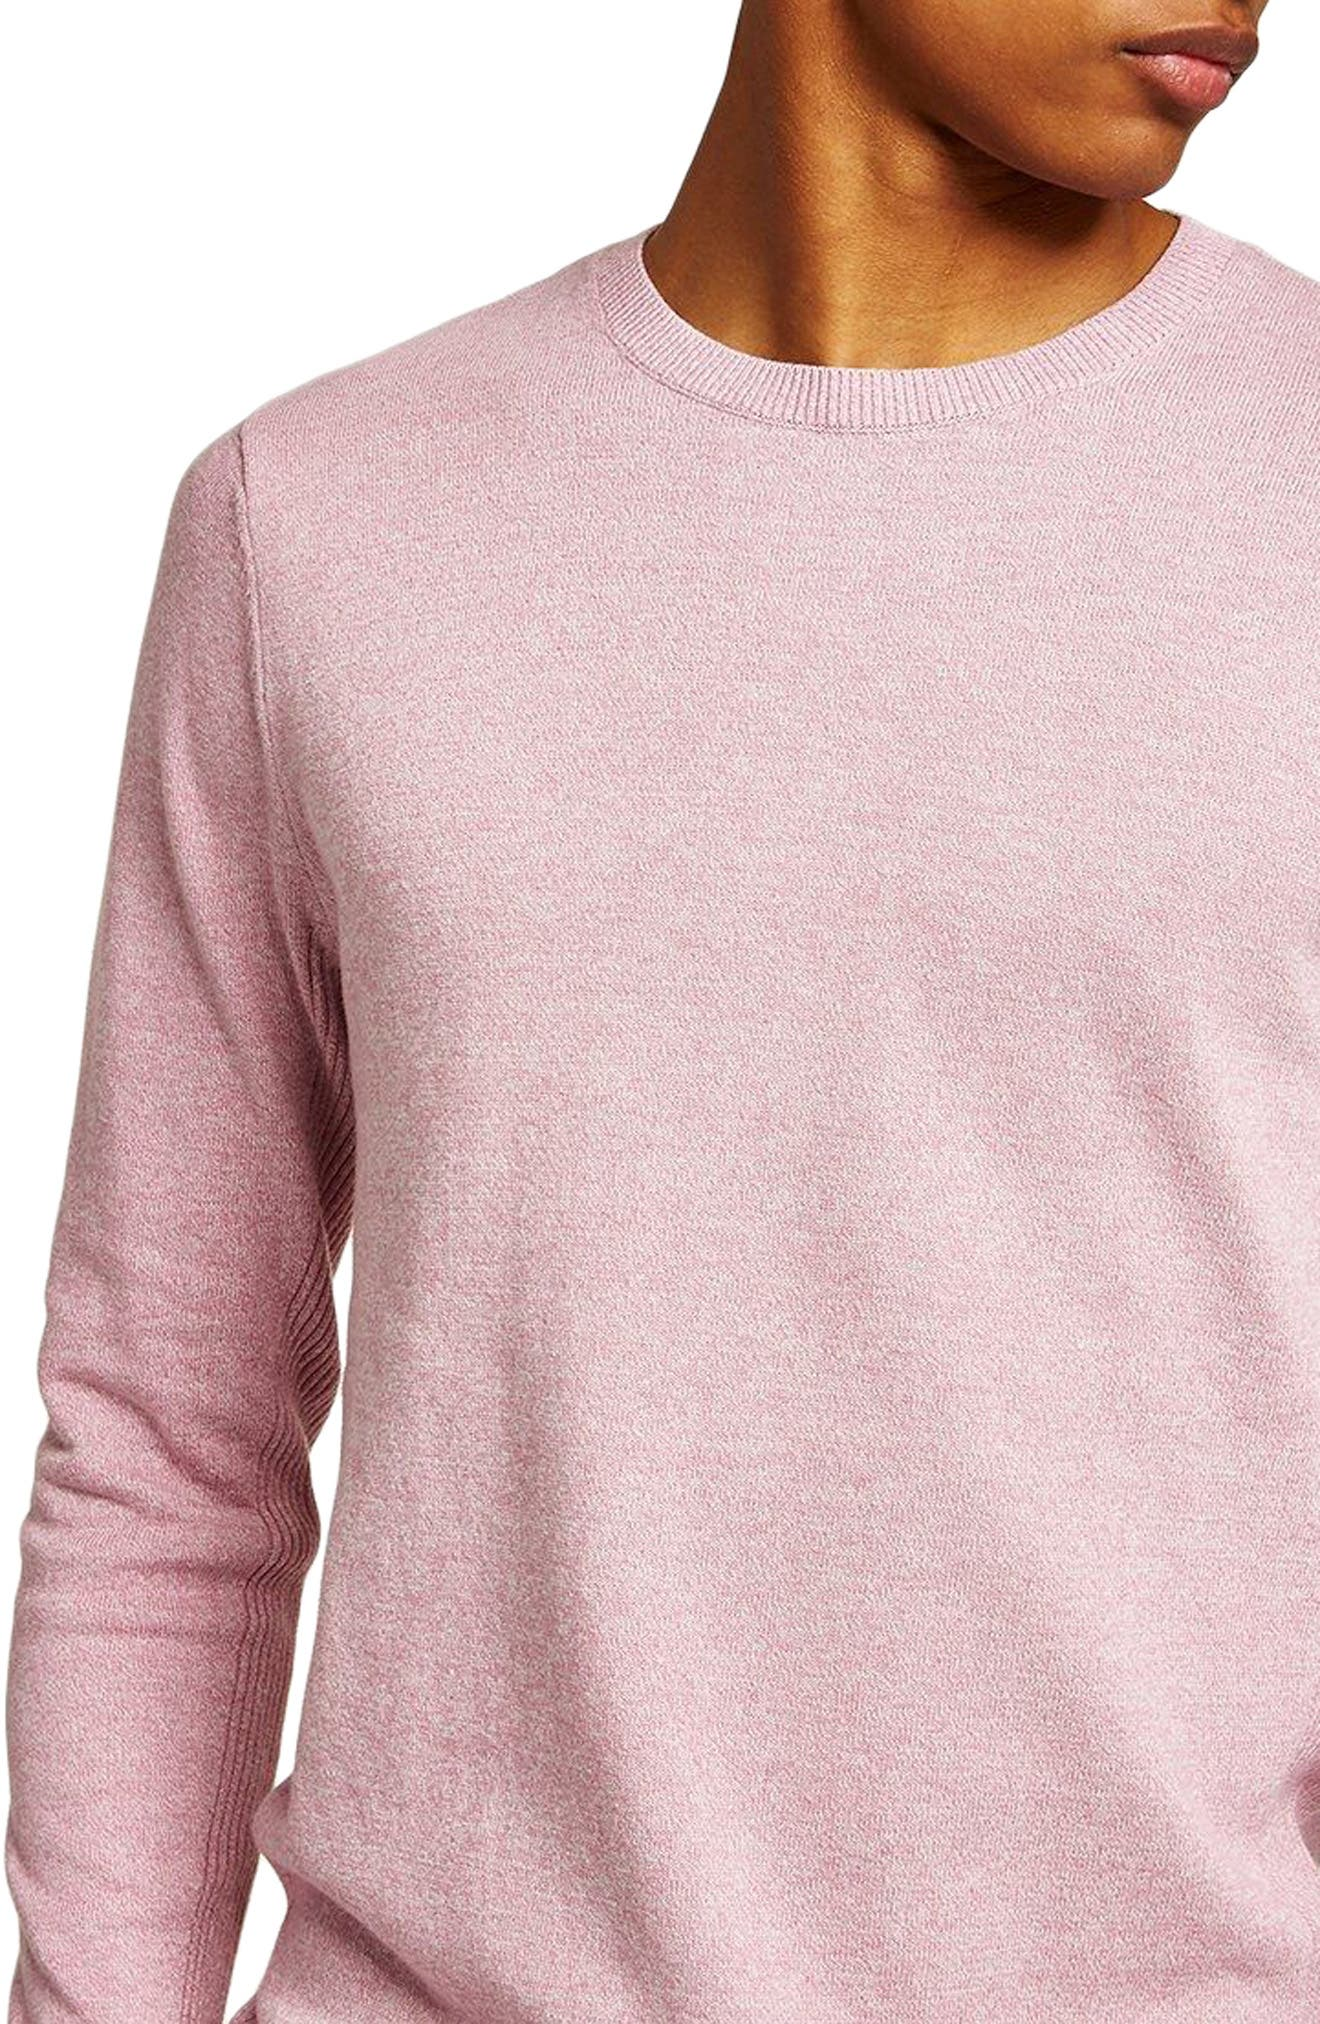 Topman Side Rib Cotton Sweater